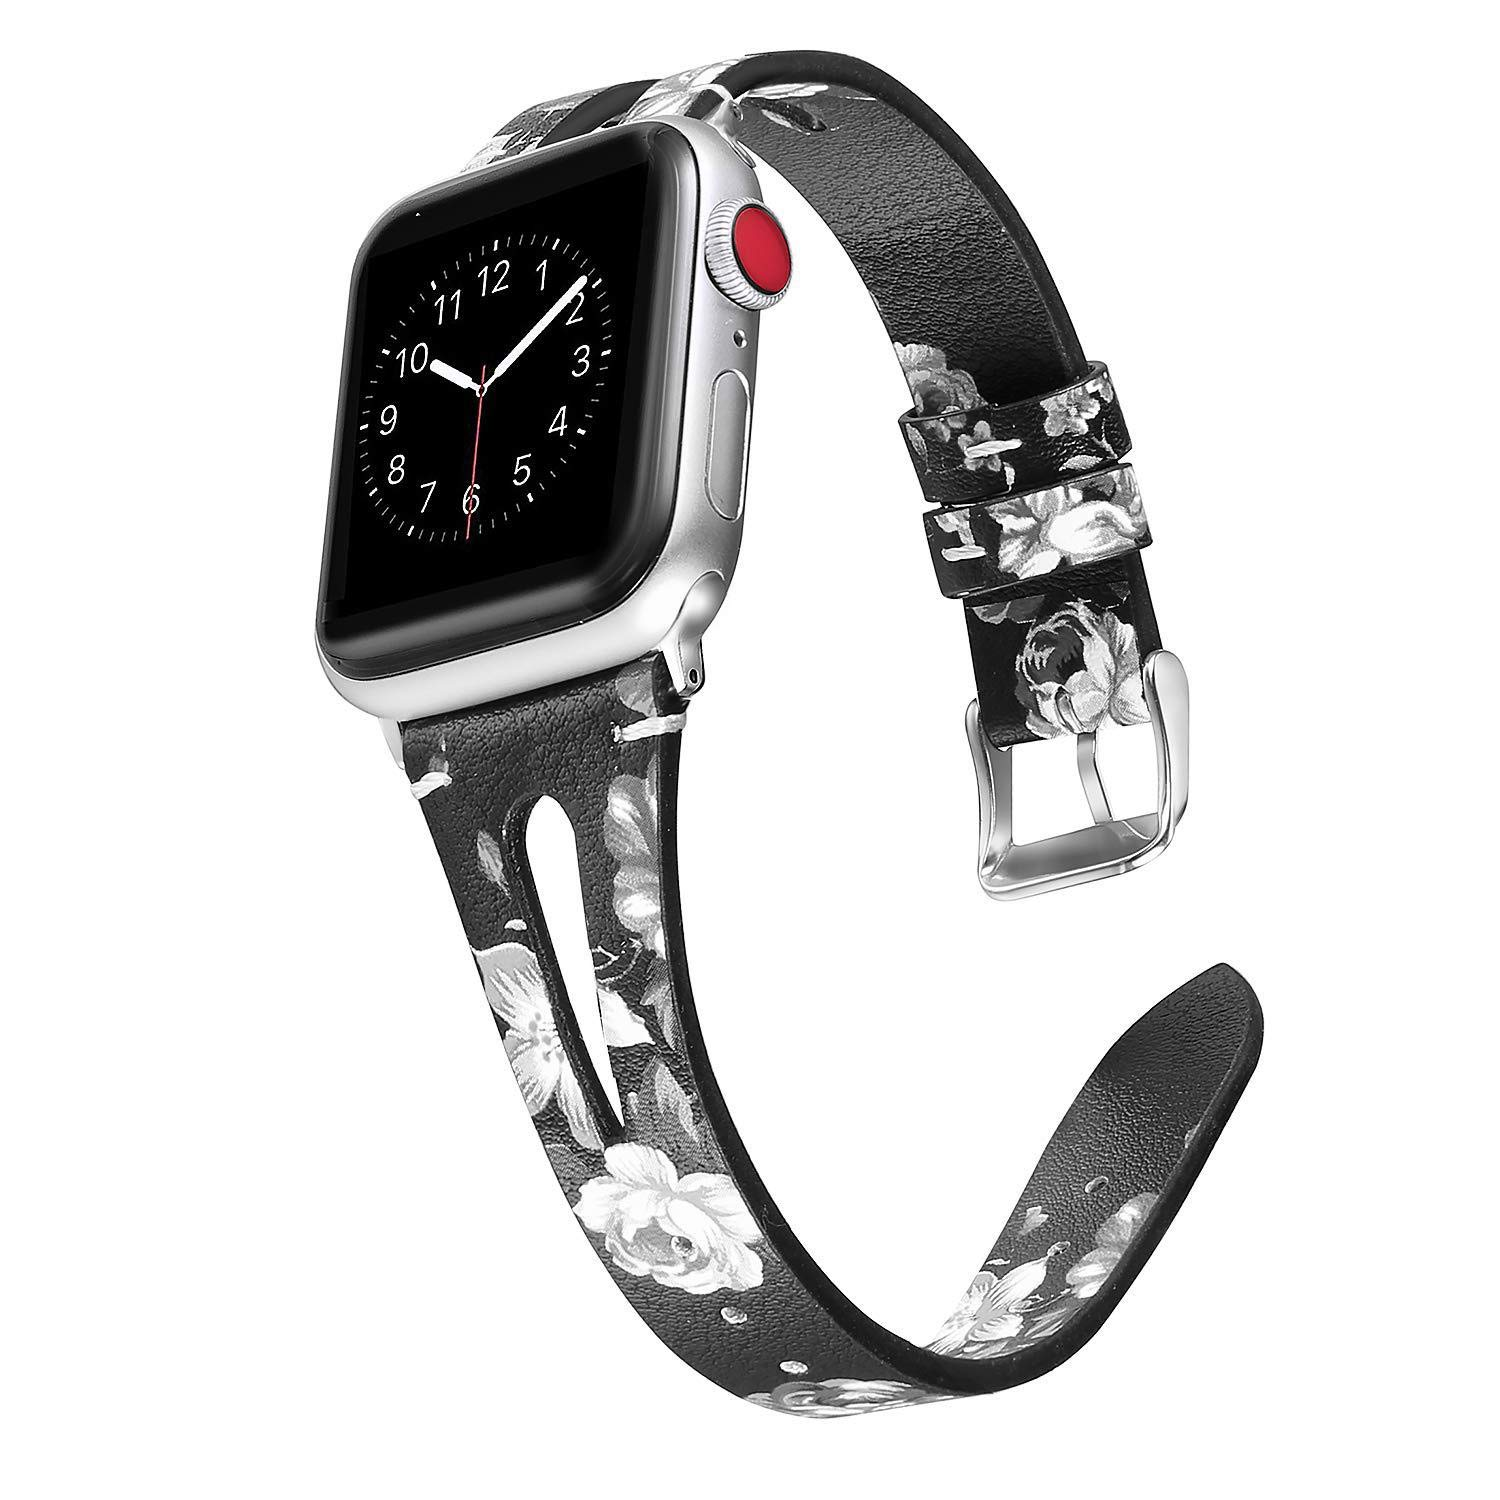 4series 22mm Watch Band 42 Watch Band for Apple 44m for Apple Watch Band for for Apple Watch Band Wrist Watch Strap Band for Apple Watch 42mm 4series for Apple Watch Bands (White Floral, 38mm40mm)